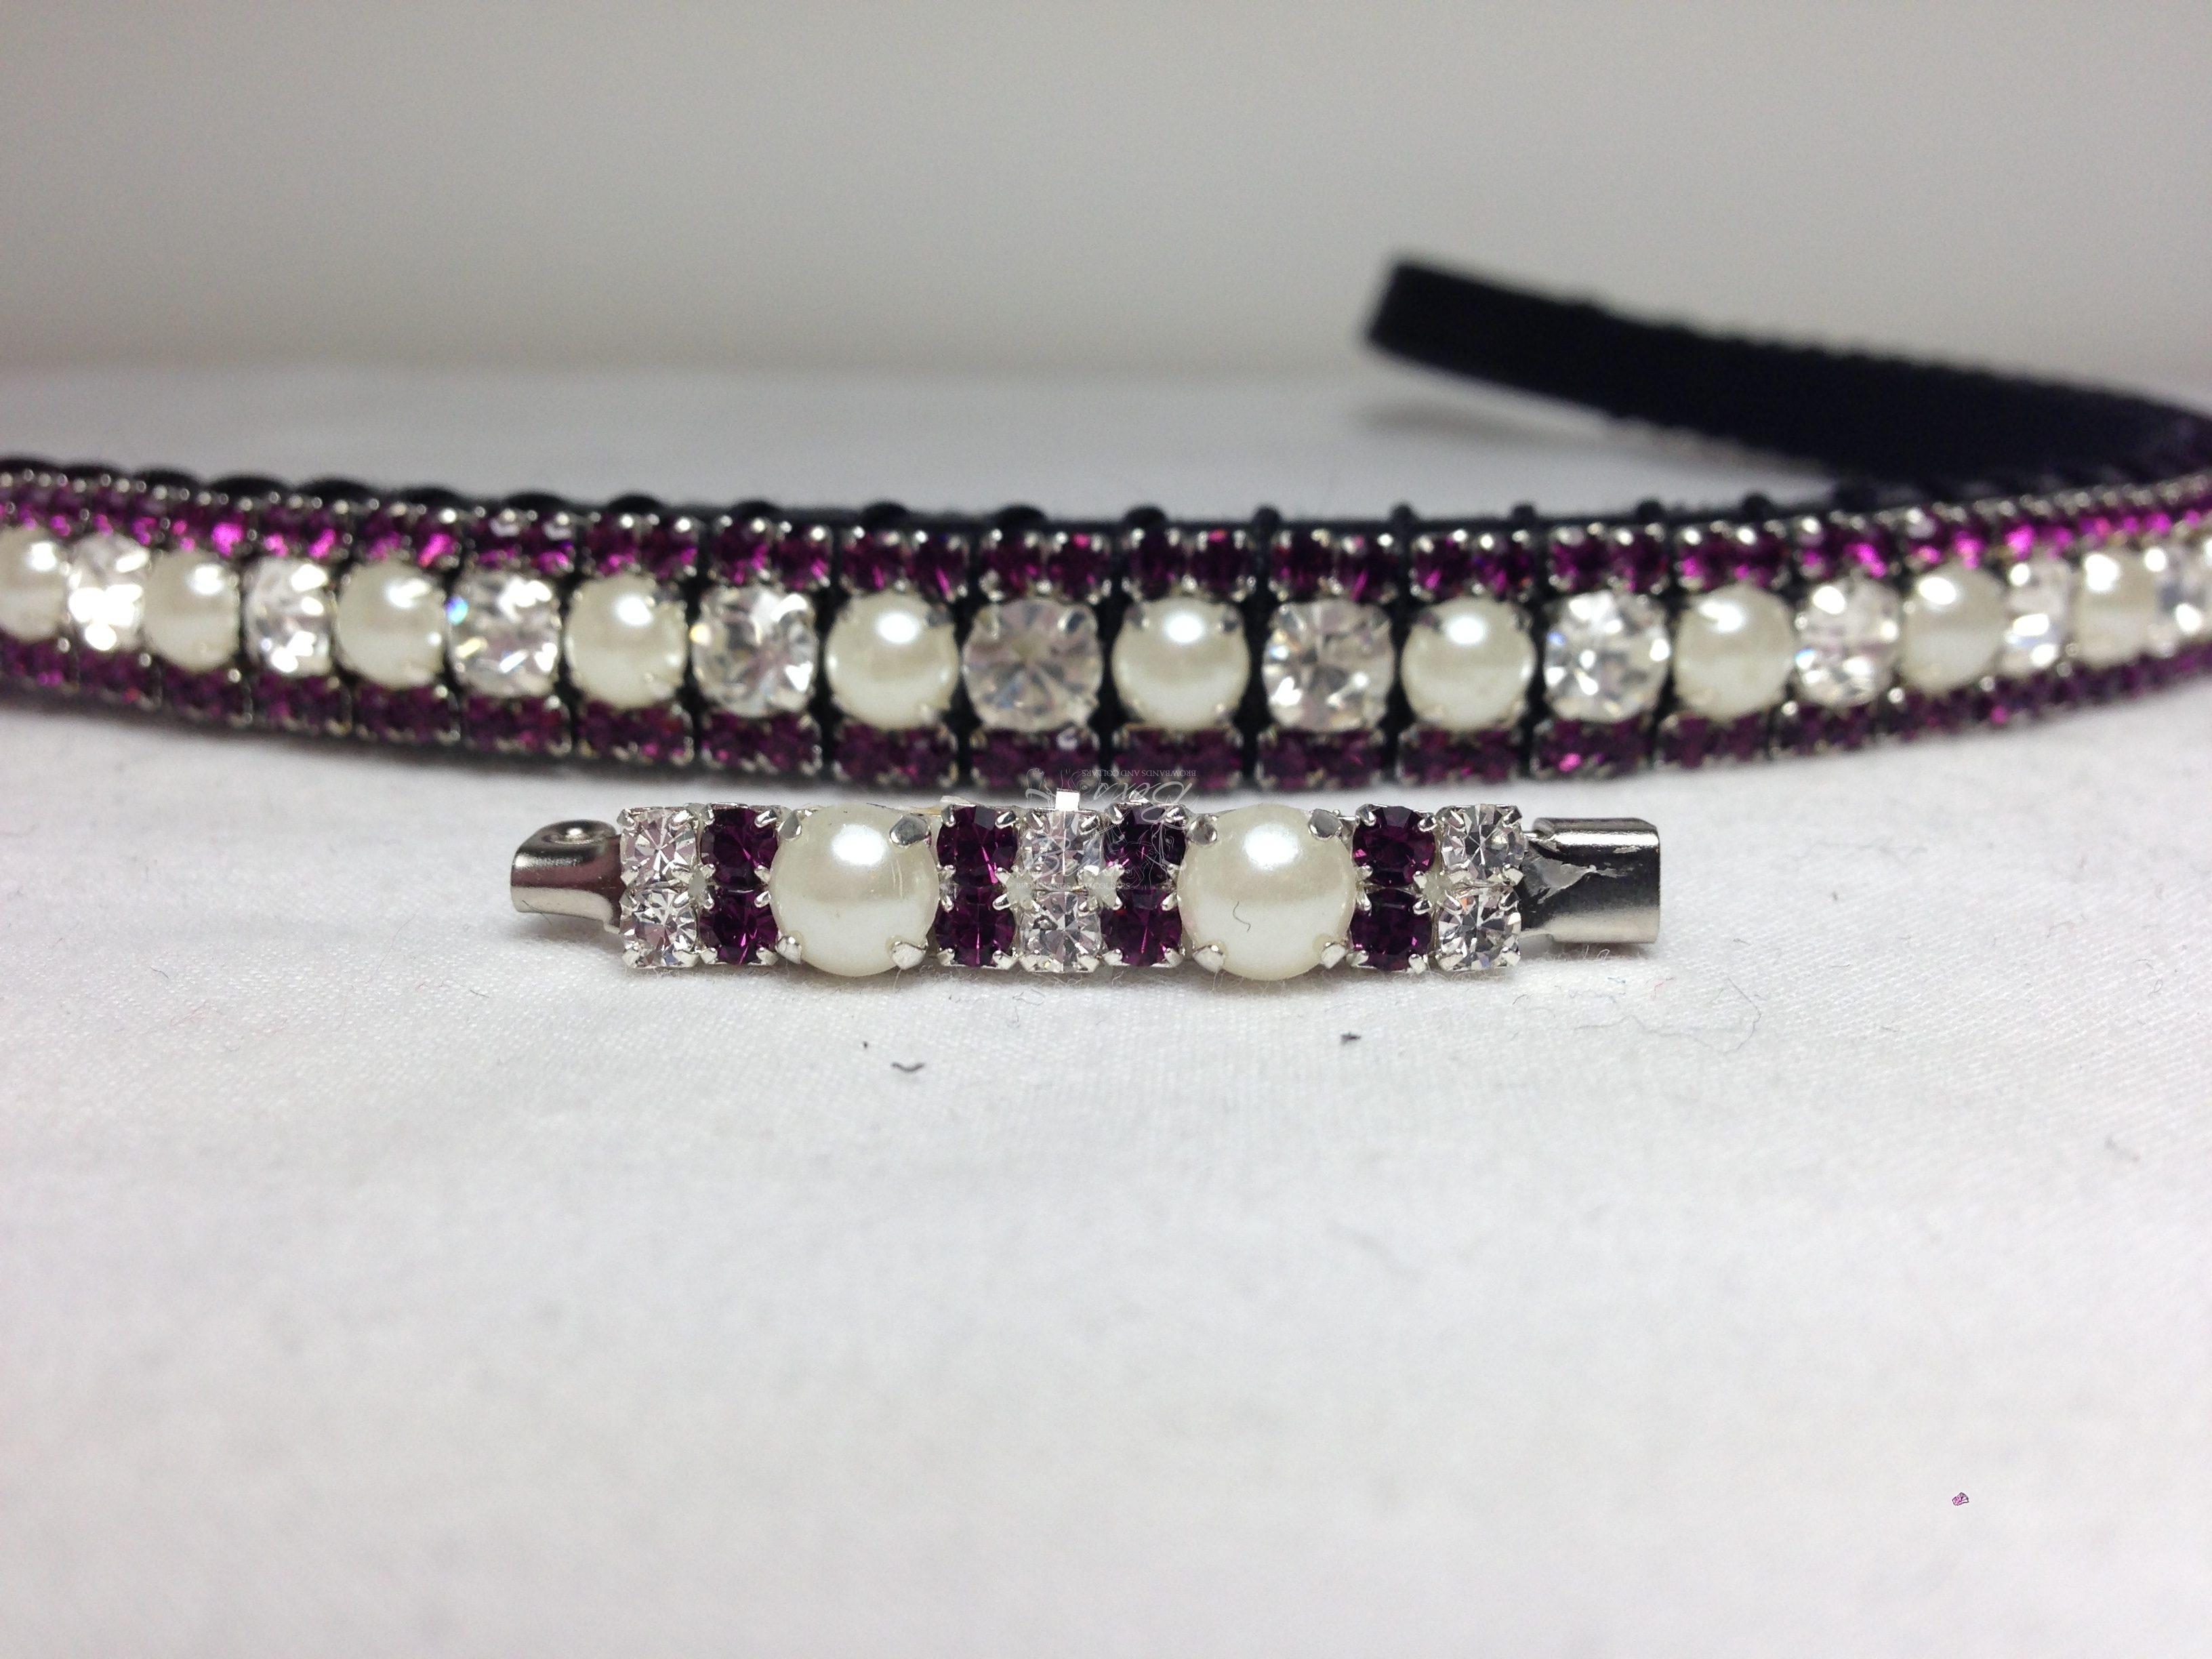 "Straight 1/2"" Preciosa Crystal Browband: Clear/Pearl (Silver casing) 6mm, and Amethyst 3mm. Shown here with a matching stock pin."